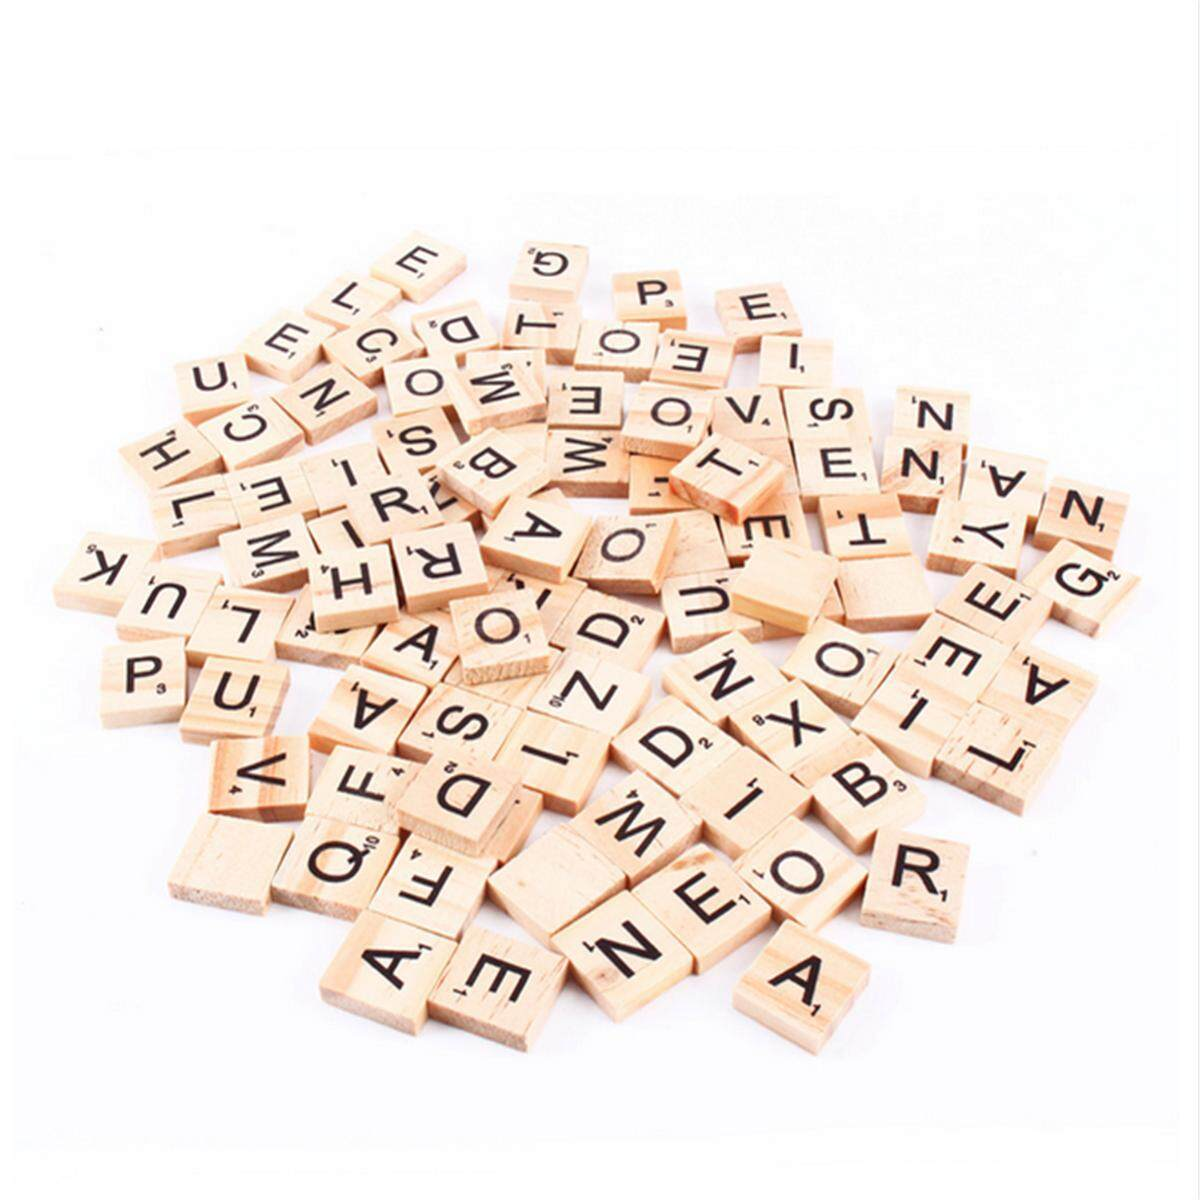 100pcs Wooden Alphabet Scrabble Tiles Black Letters Numbers For Crafts Wood By Glimmer.